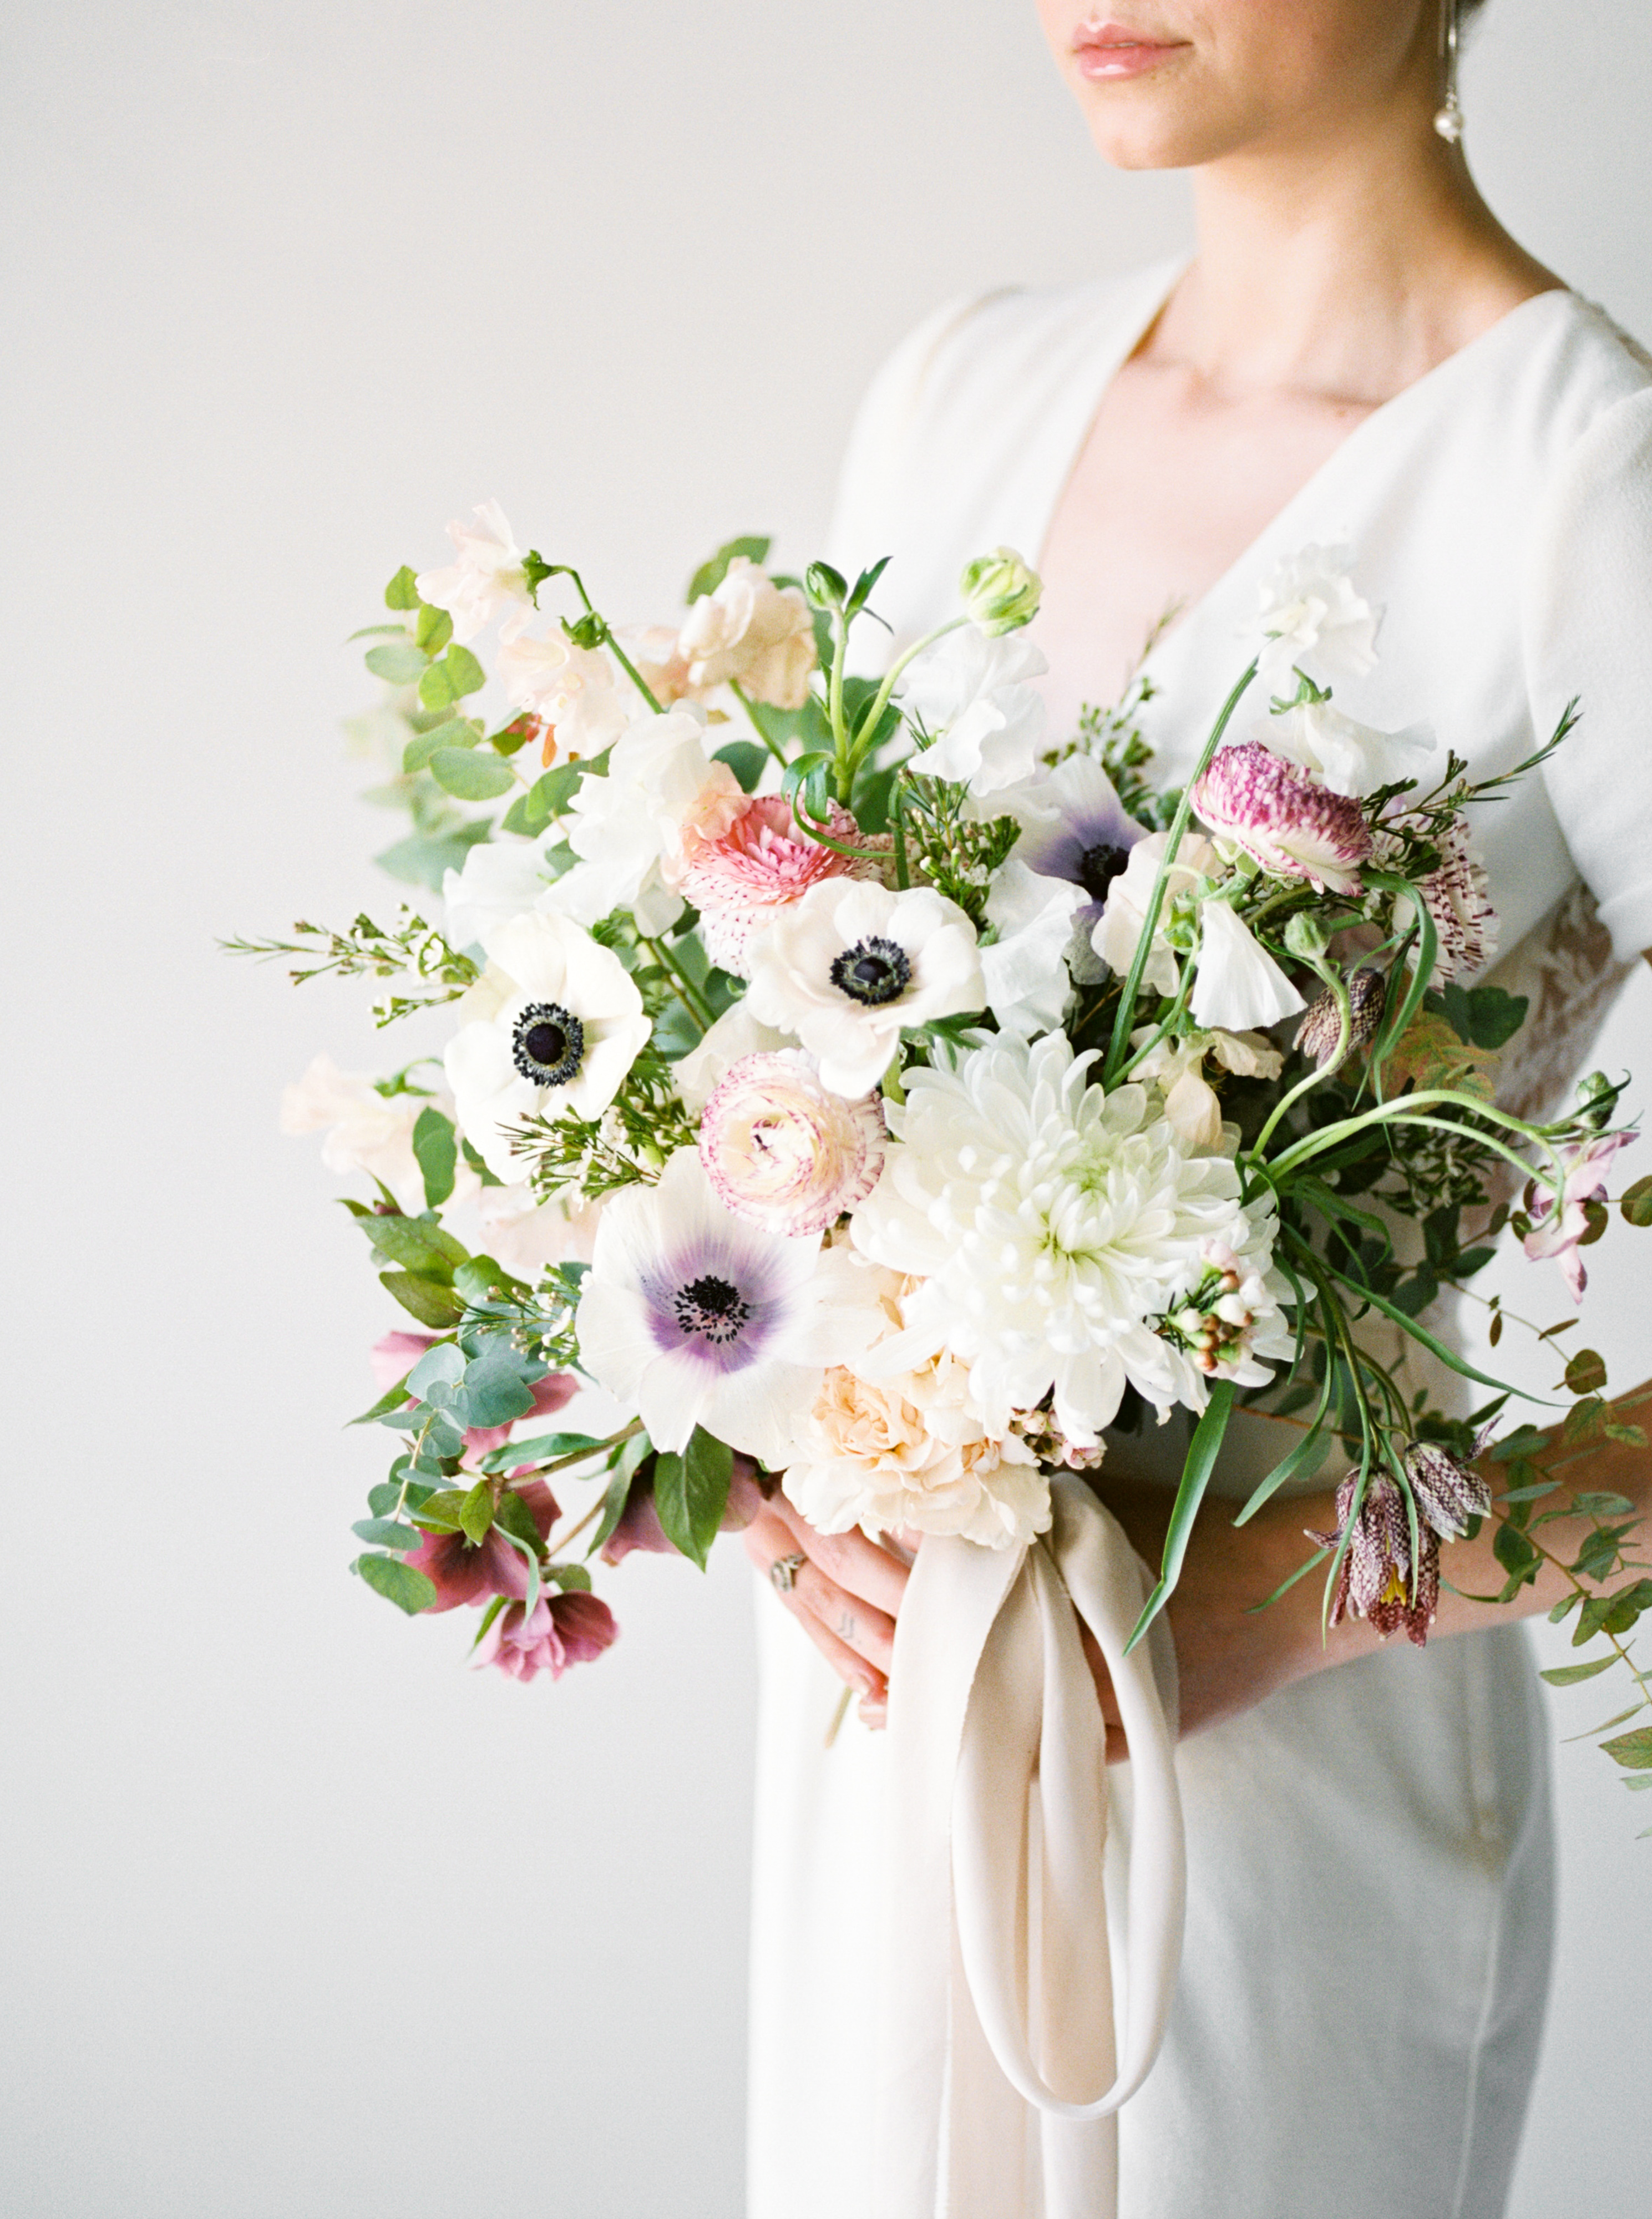 Rose-and-Laurel-Minnesota-Wedding-and-Event-Florist-Classically-Striking-Floral-Design-Spring-Anemone-Bridal-Bouquet